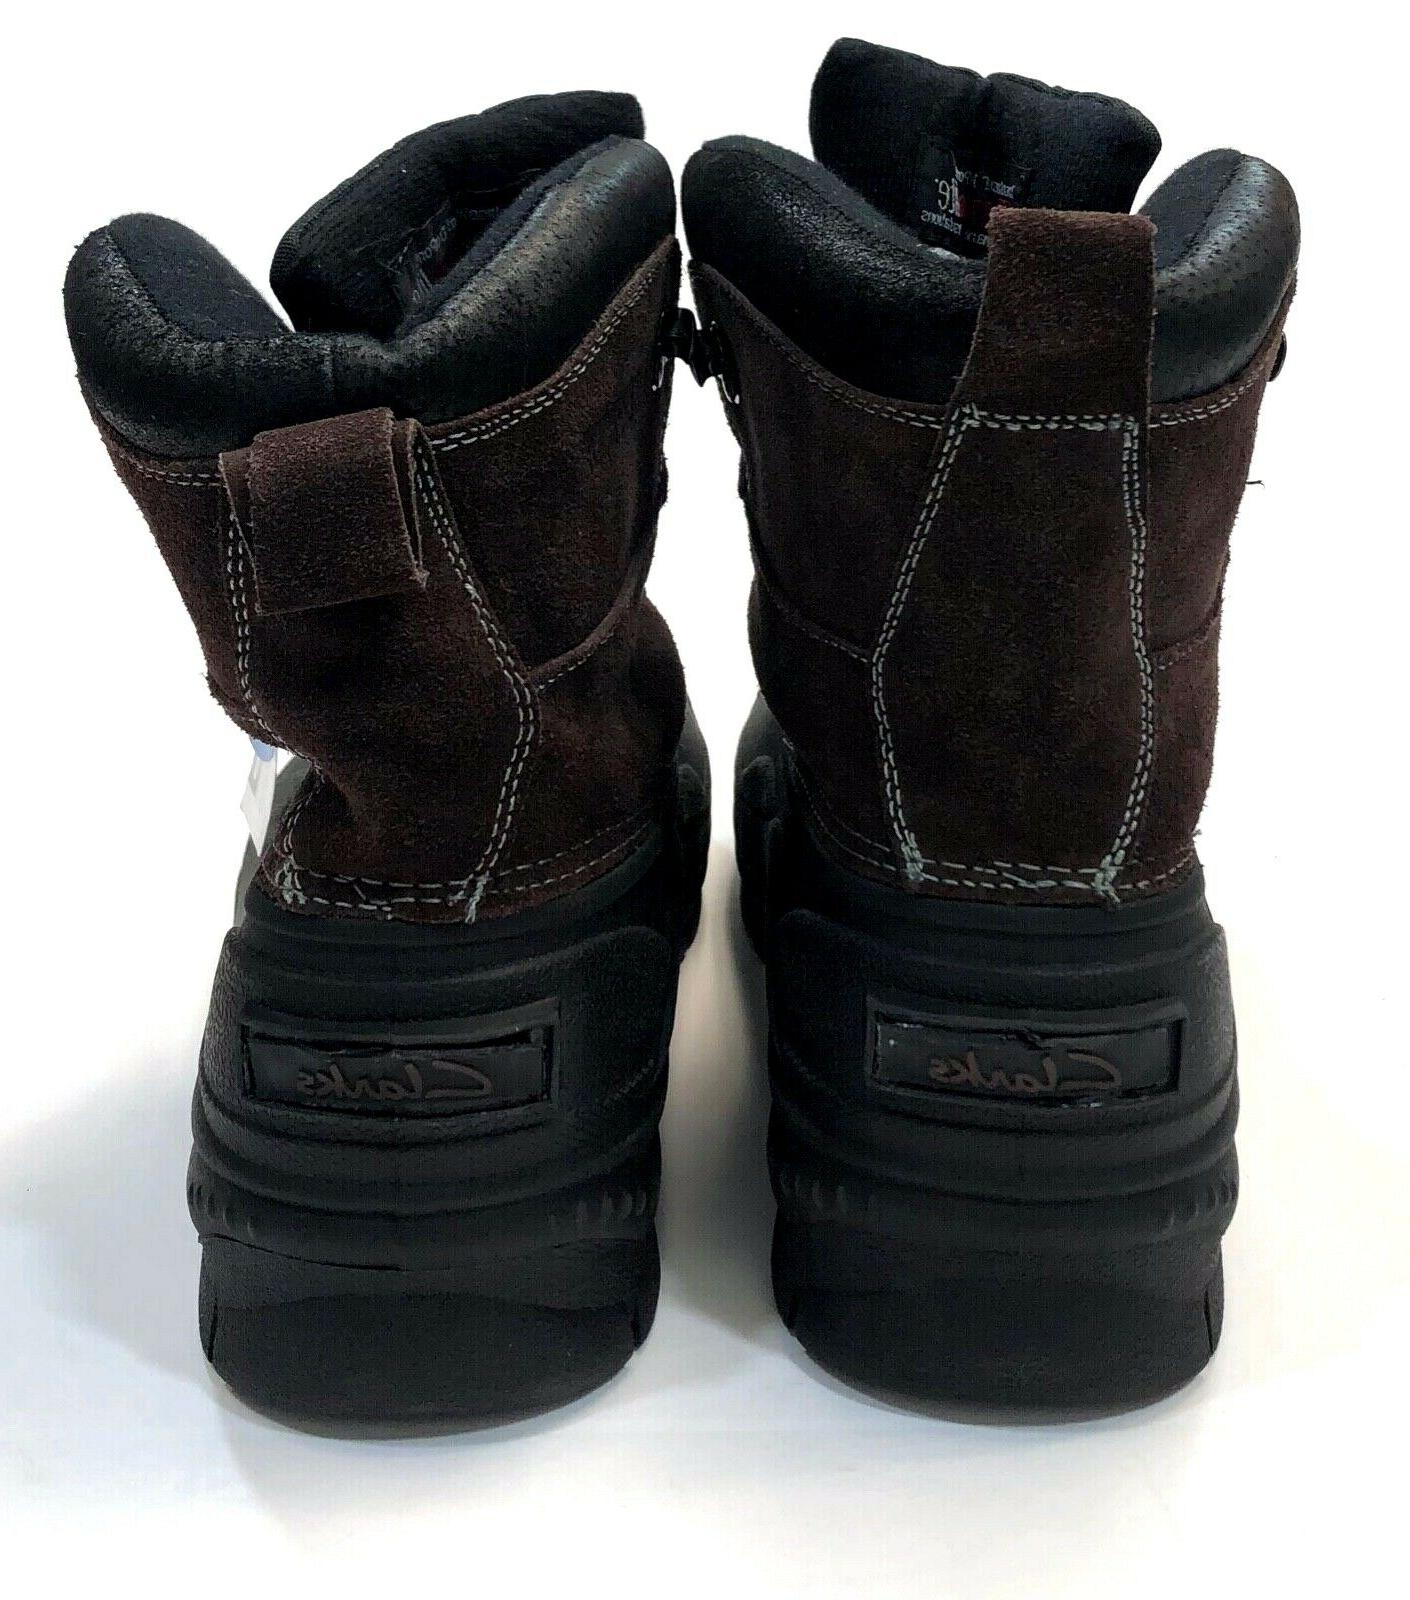 Clarks Crewson Edge Insulated Winter Snow Boots Mens